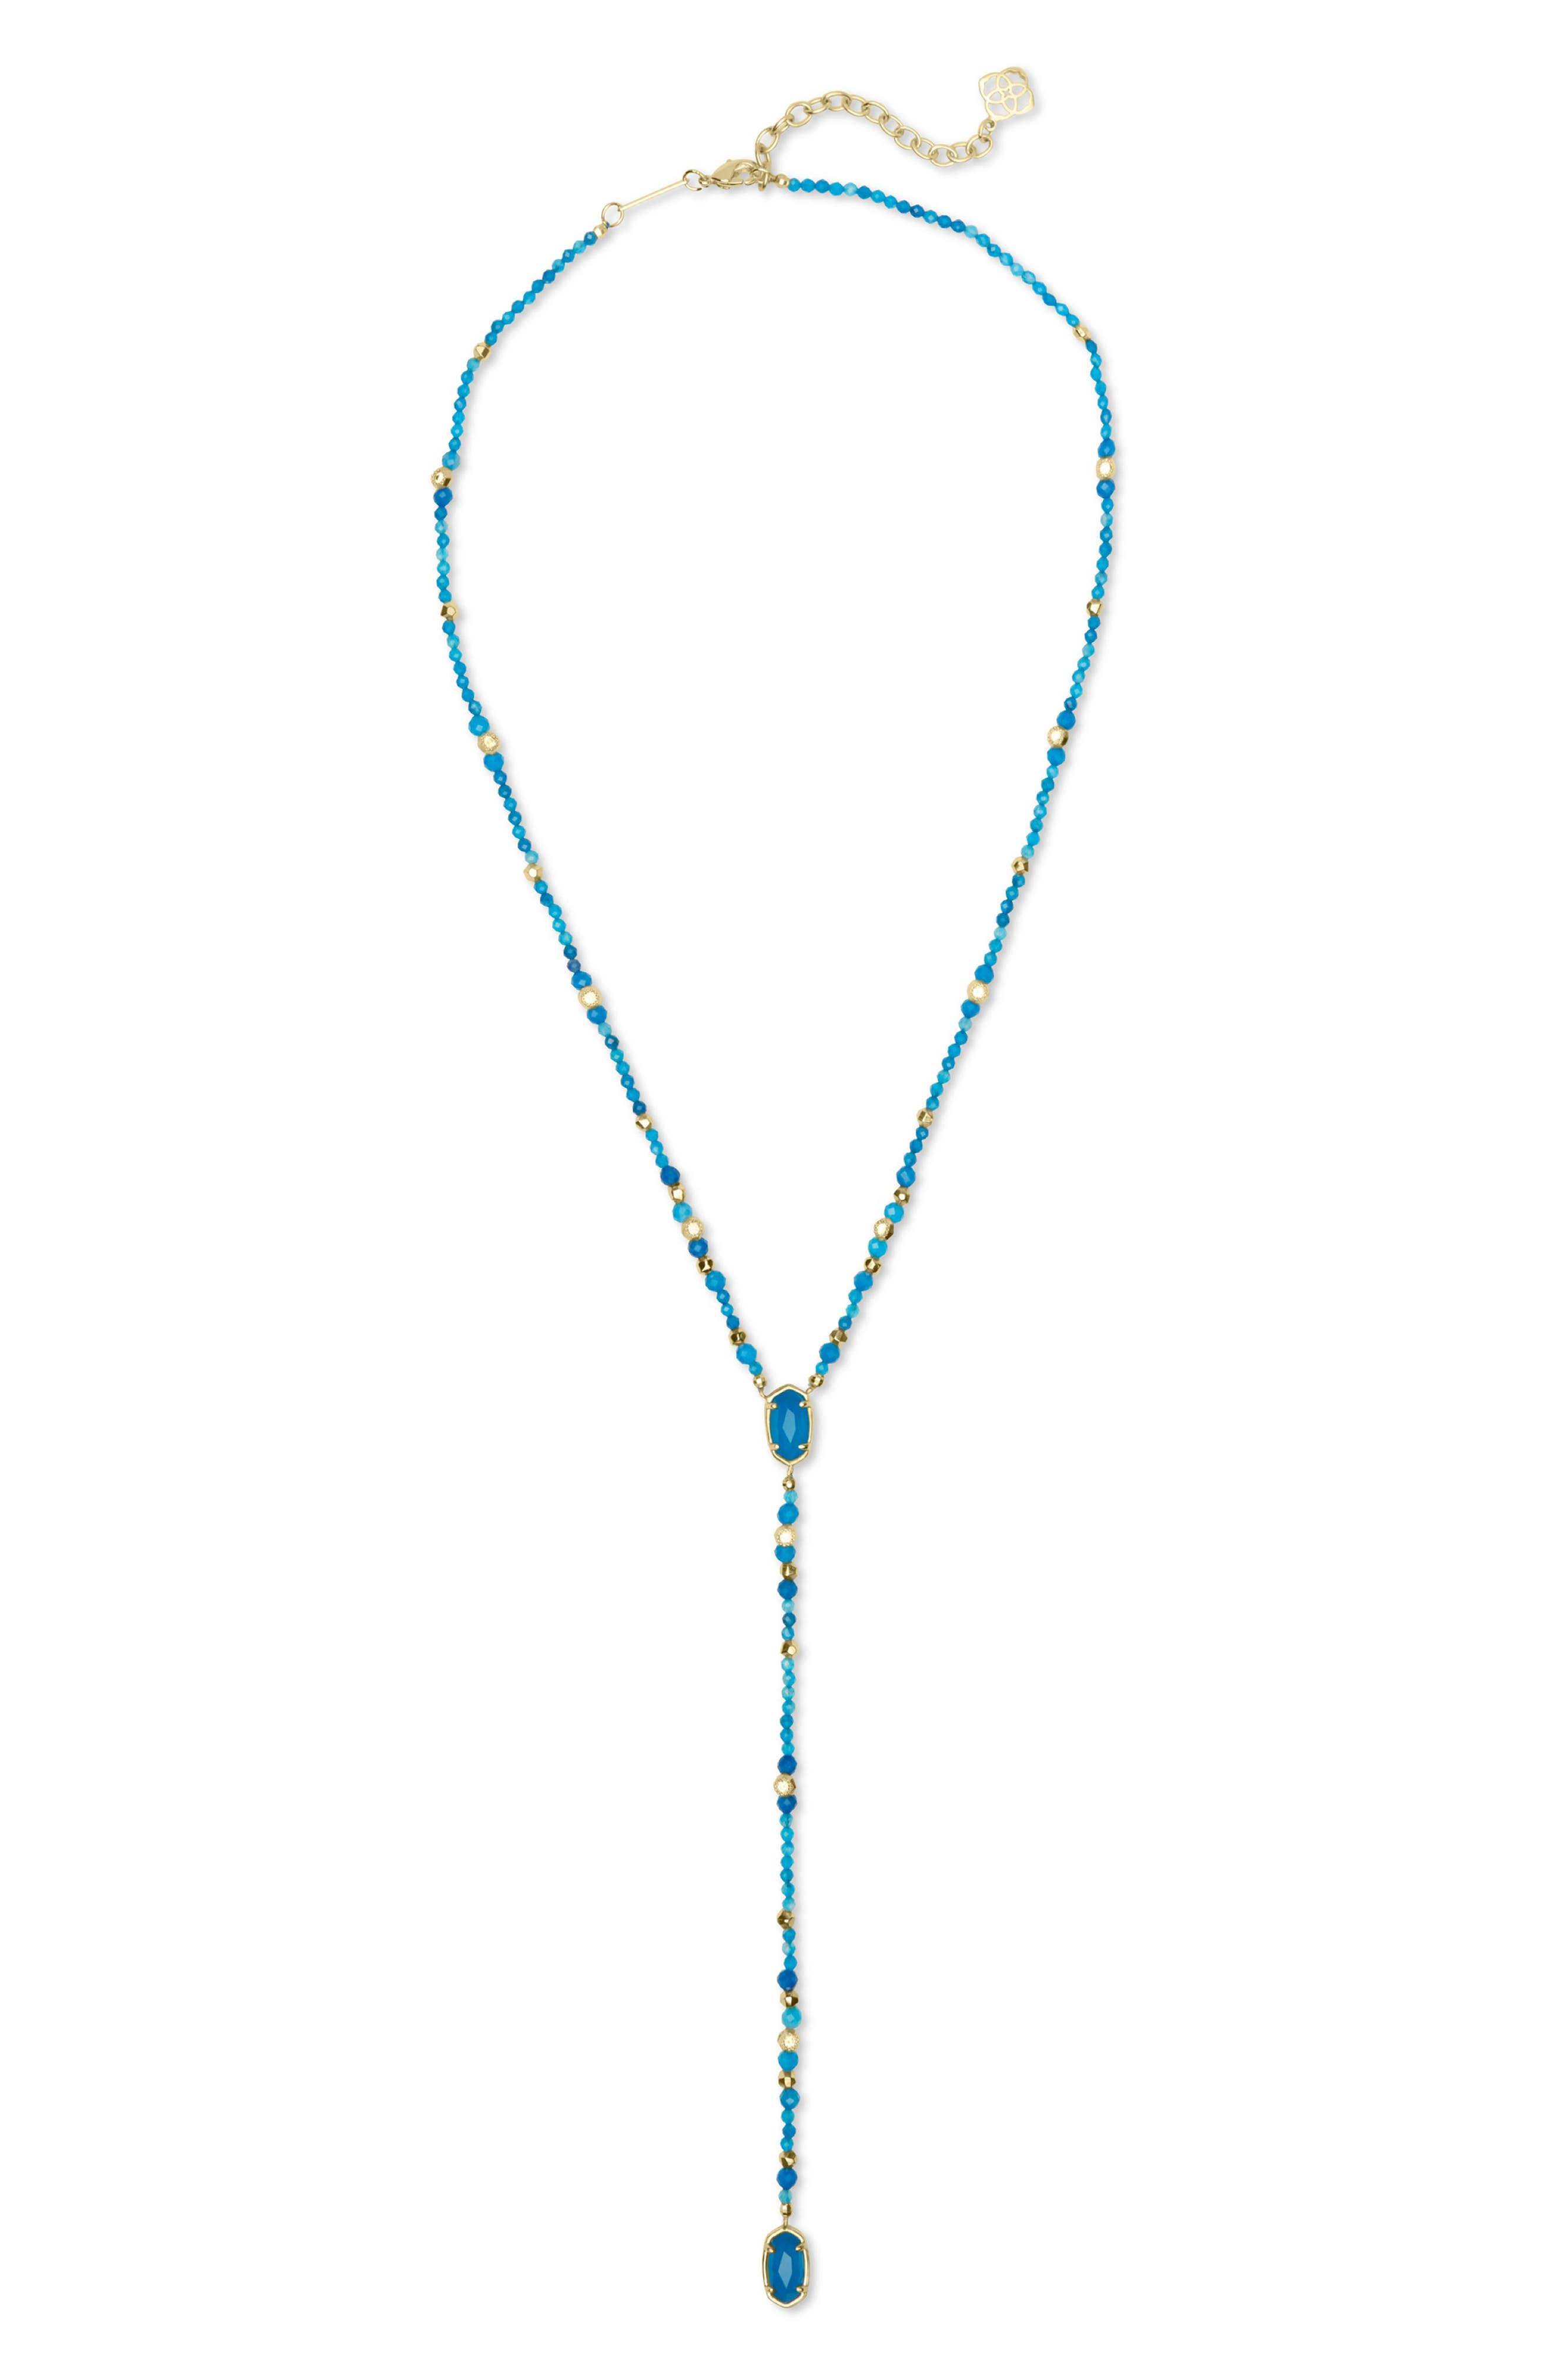 Bethany Y-Shaped Necklace,                             Alternate thumbnail 4, color,                             TEAL UNBANDED AGATE/ GOLD